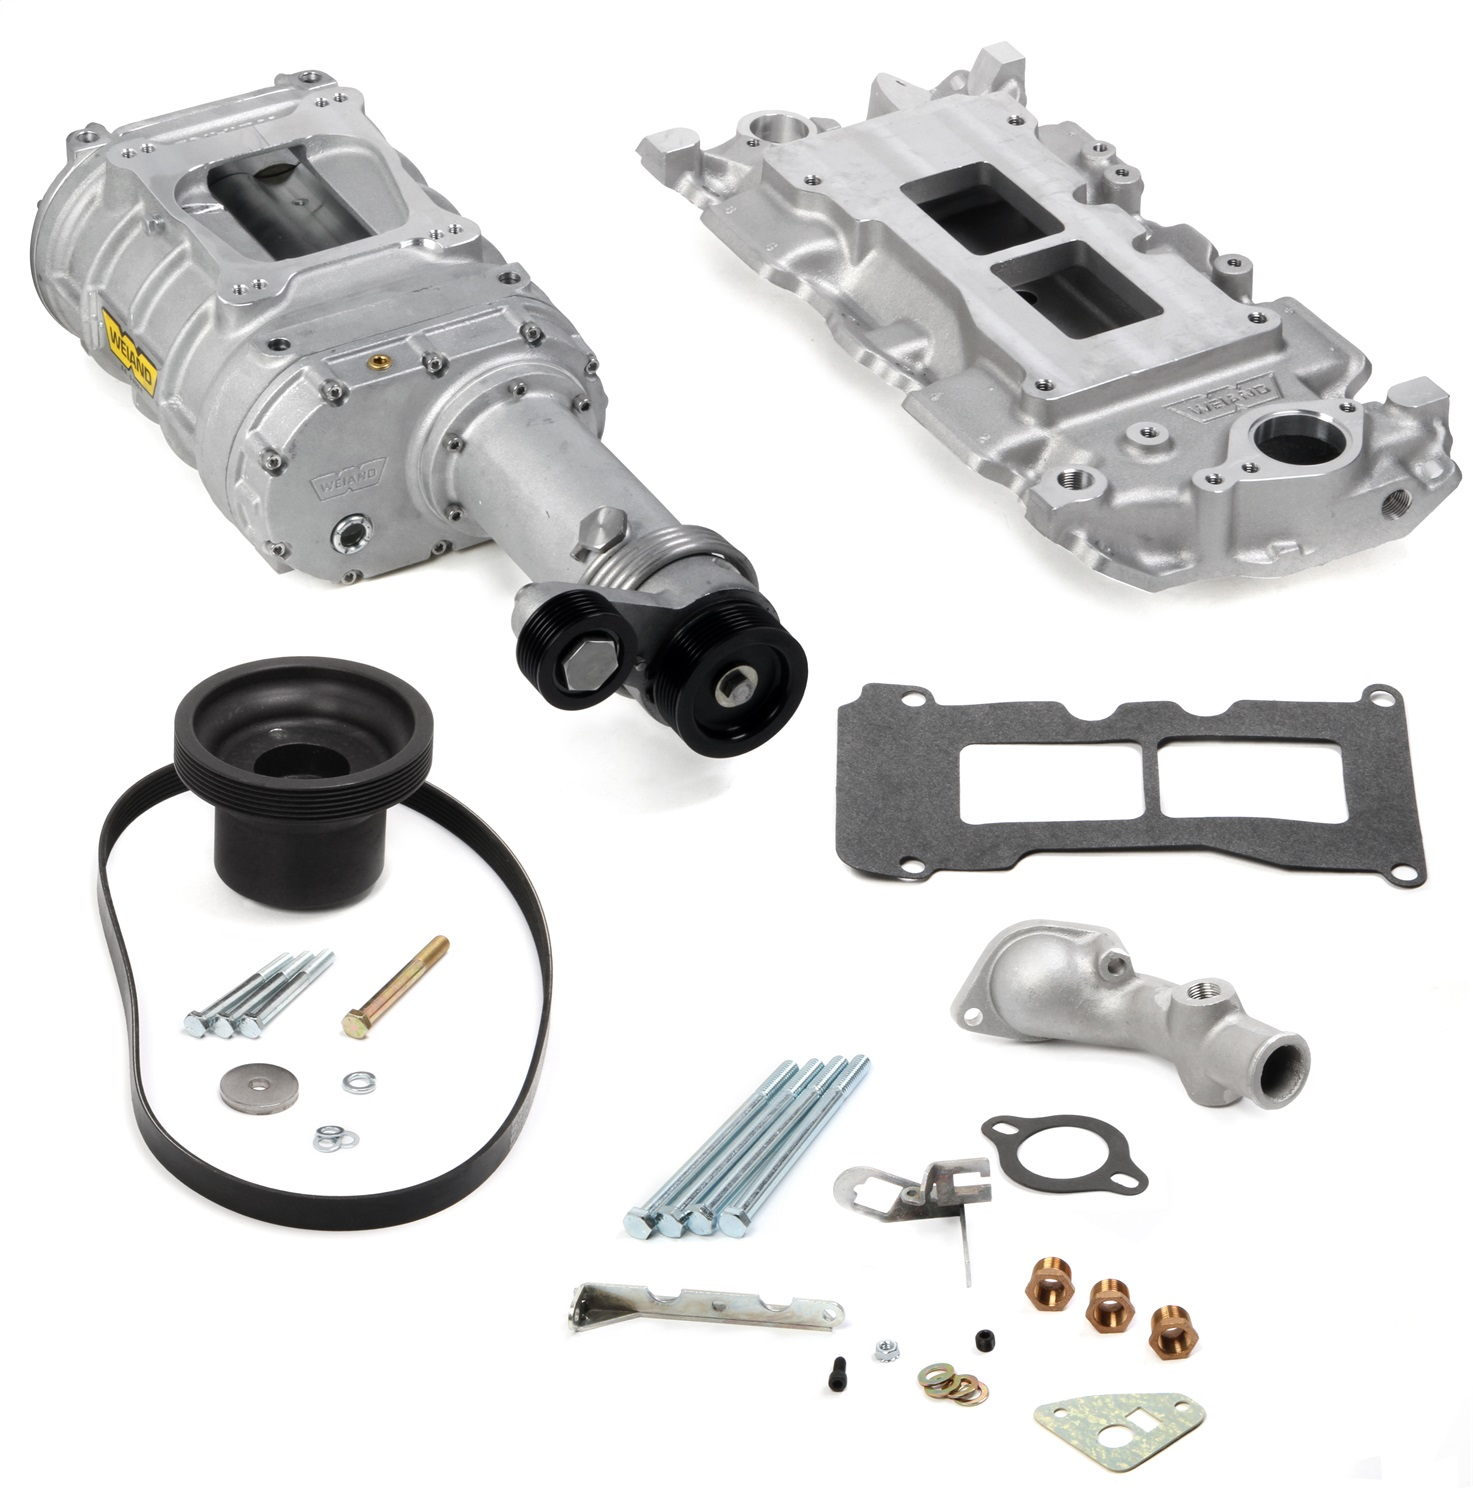 Weiand 6502-1 14X series Superchargers